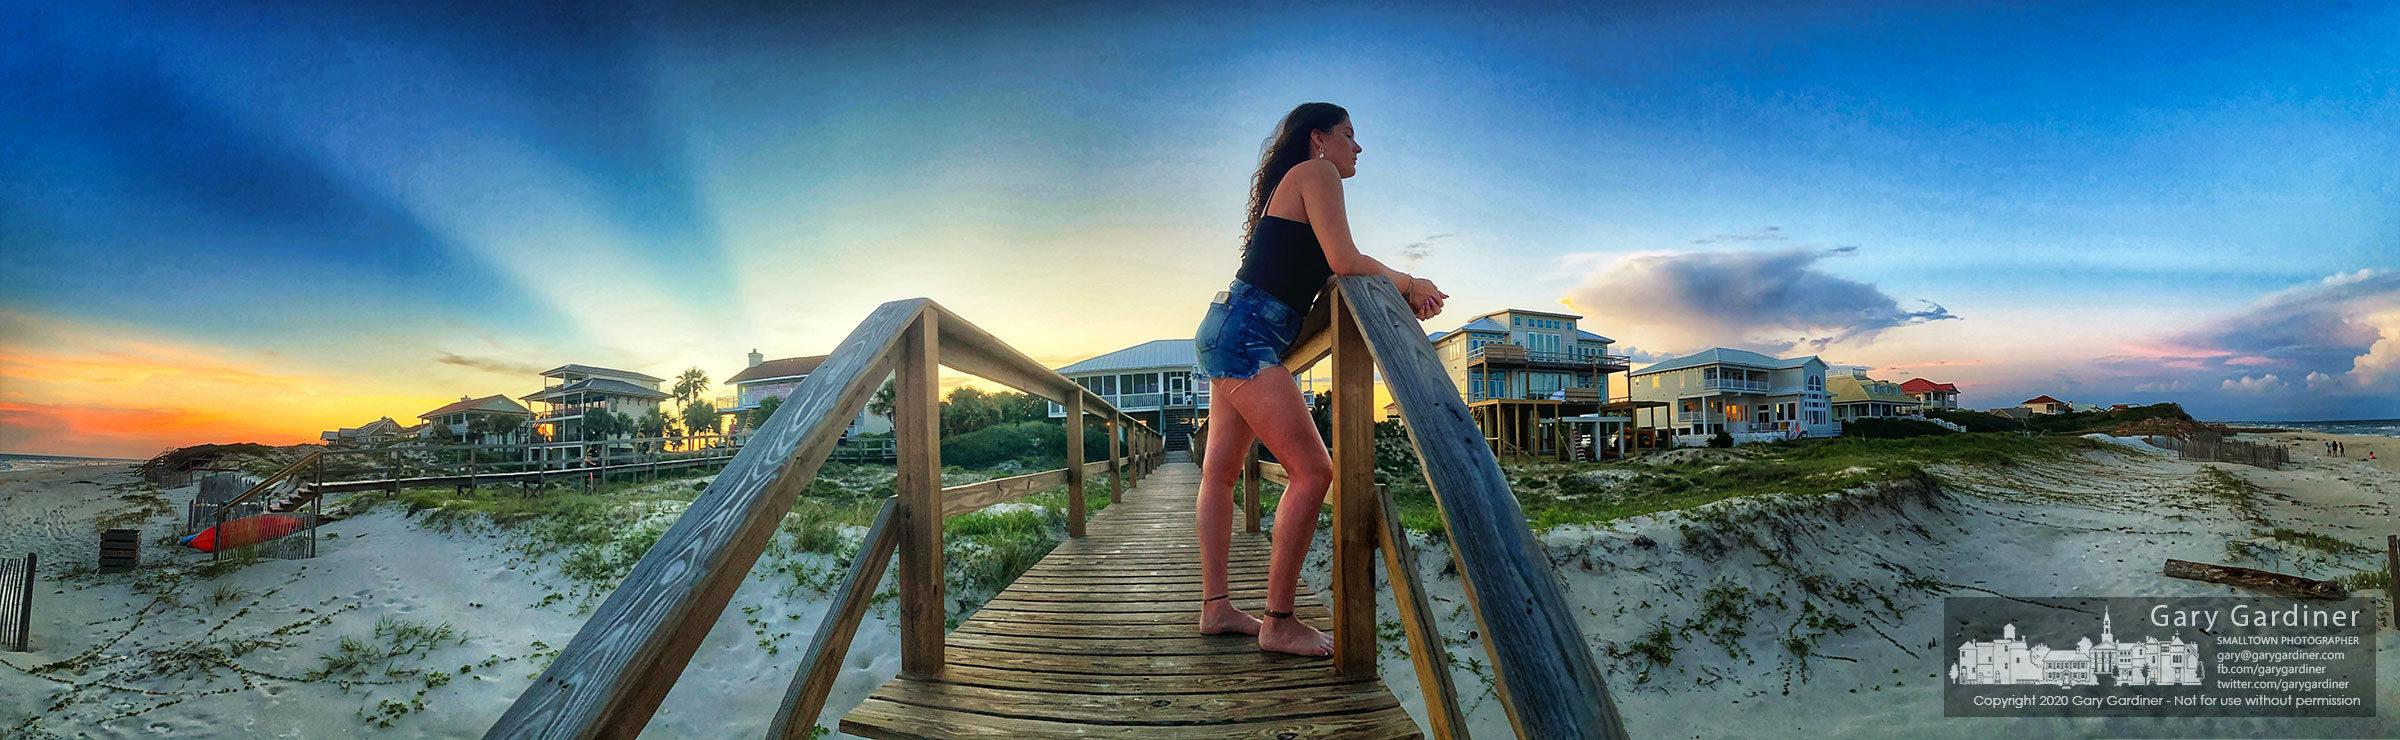 Ashley Robbins watches storm clouds approach the beach at St. George Island, FL, as the sun sets behind the island. My Final Photo for July 17, 2020.